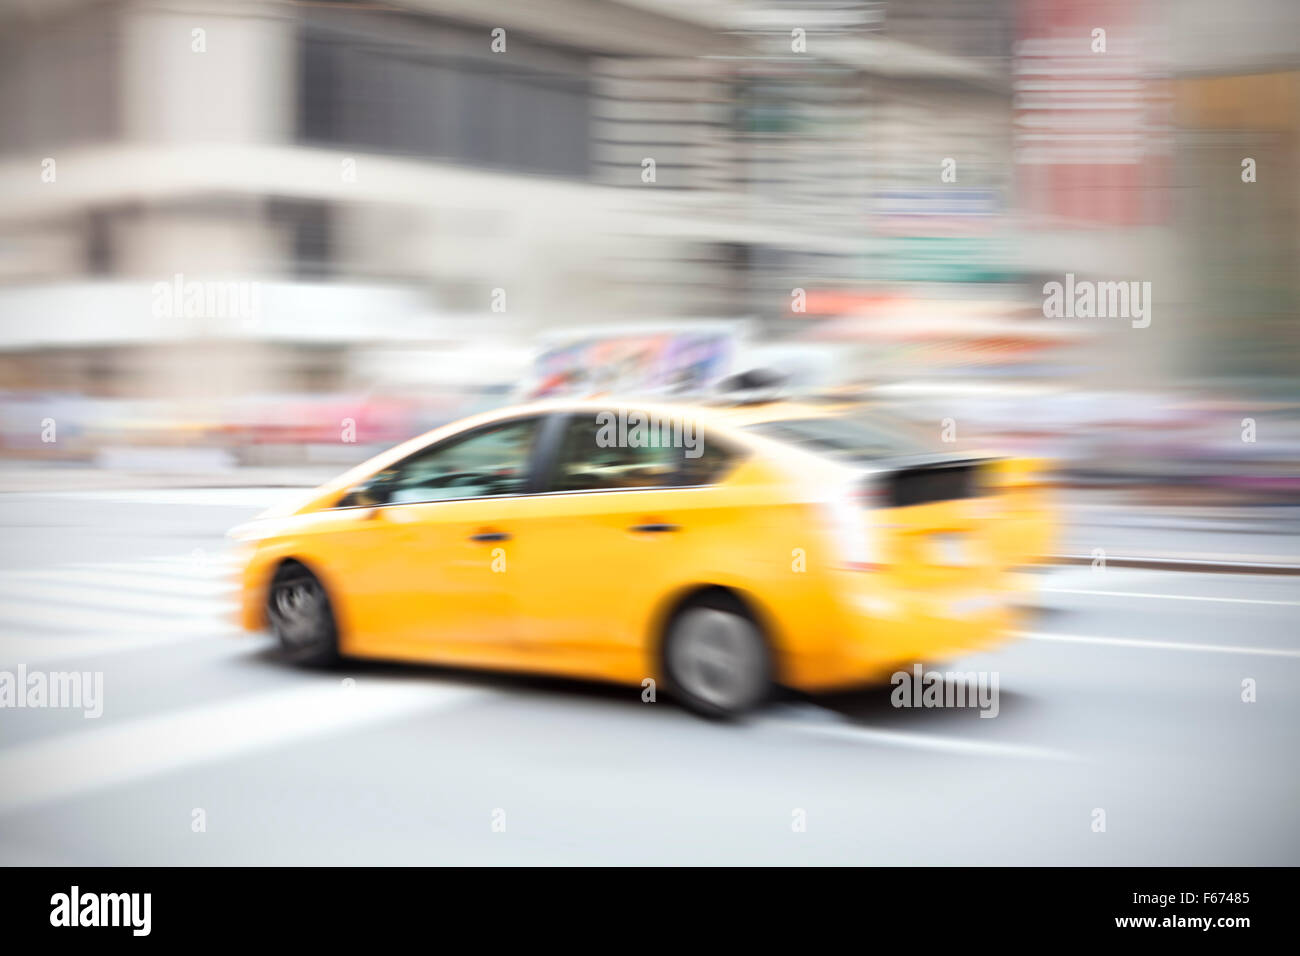 Motion blurred yellow taxi on a city street. - Stock Image